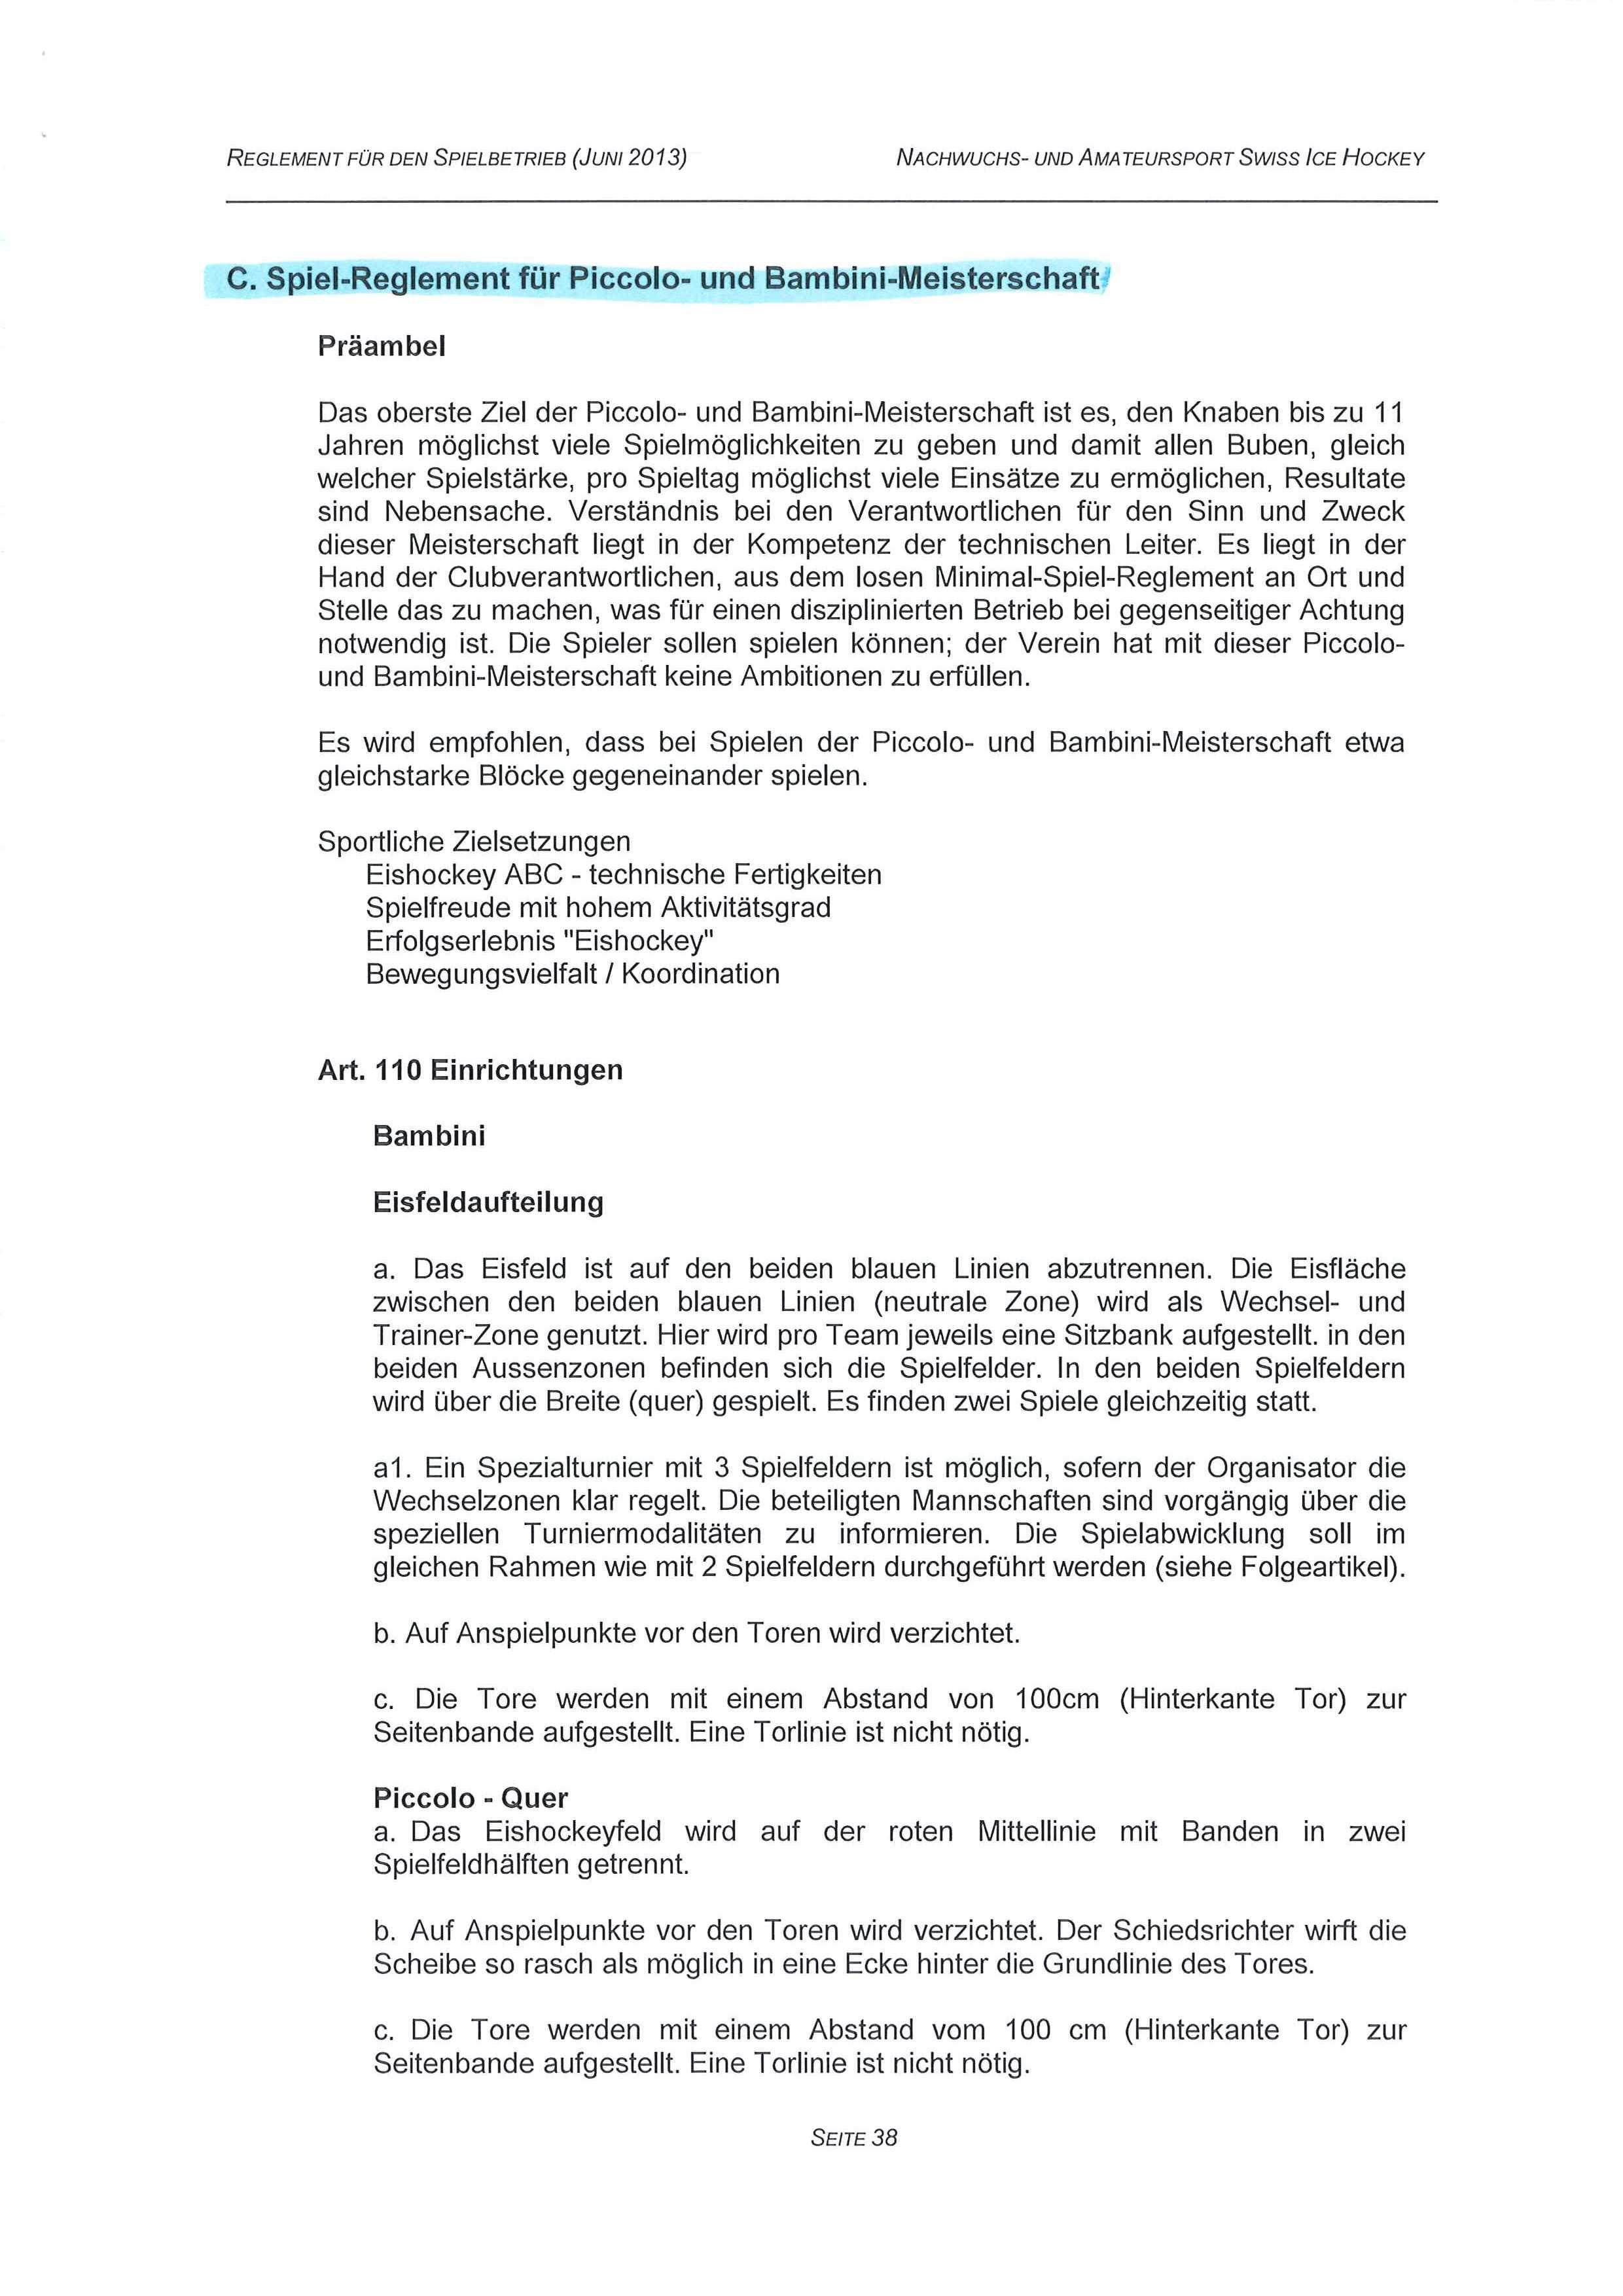 REGLEMENT FOR DEN SPIELBETRIEB (JUNI 2013) NACHWUCHS- UND AMATEURSPORT SWISS ICE HOCKEY C.